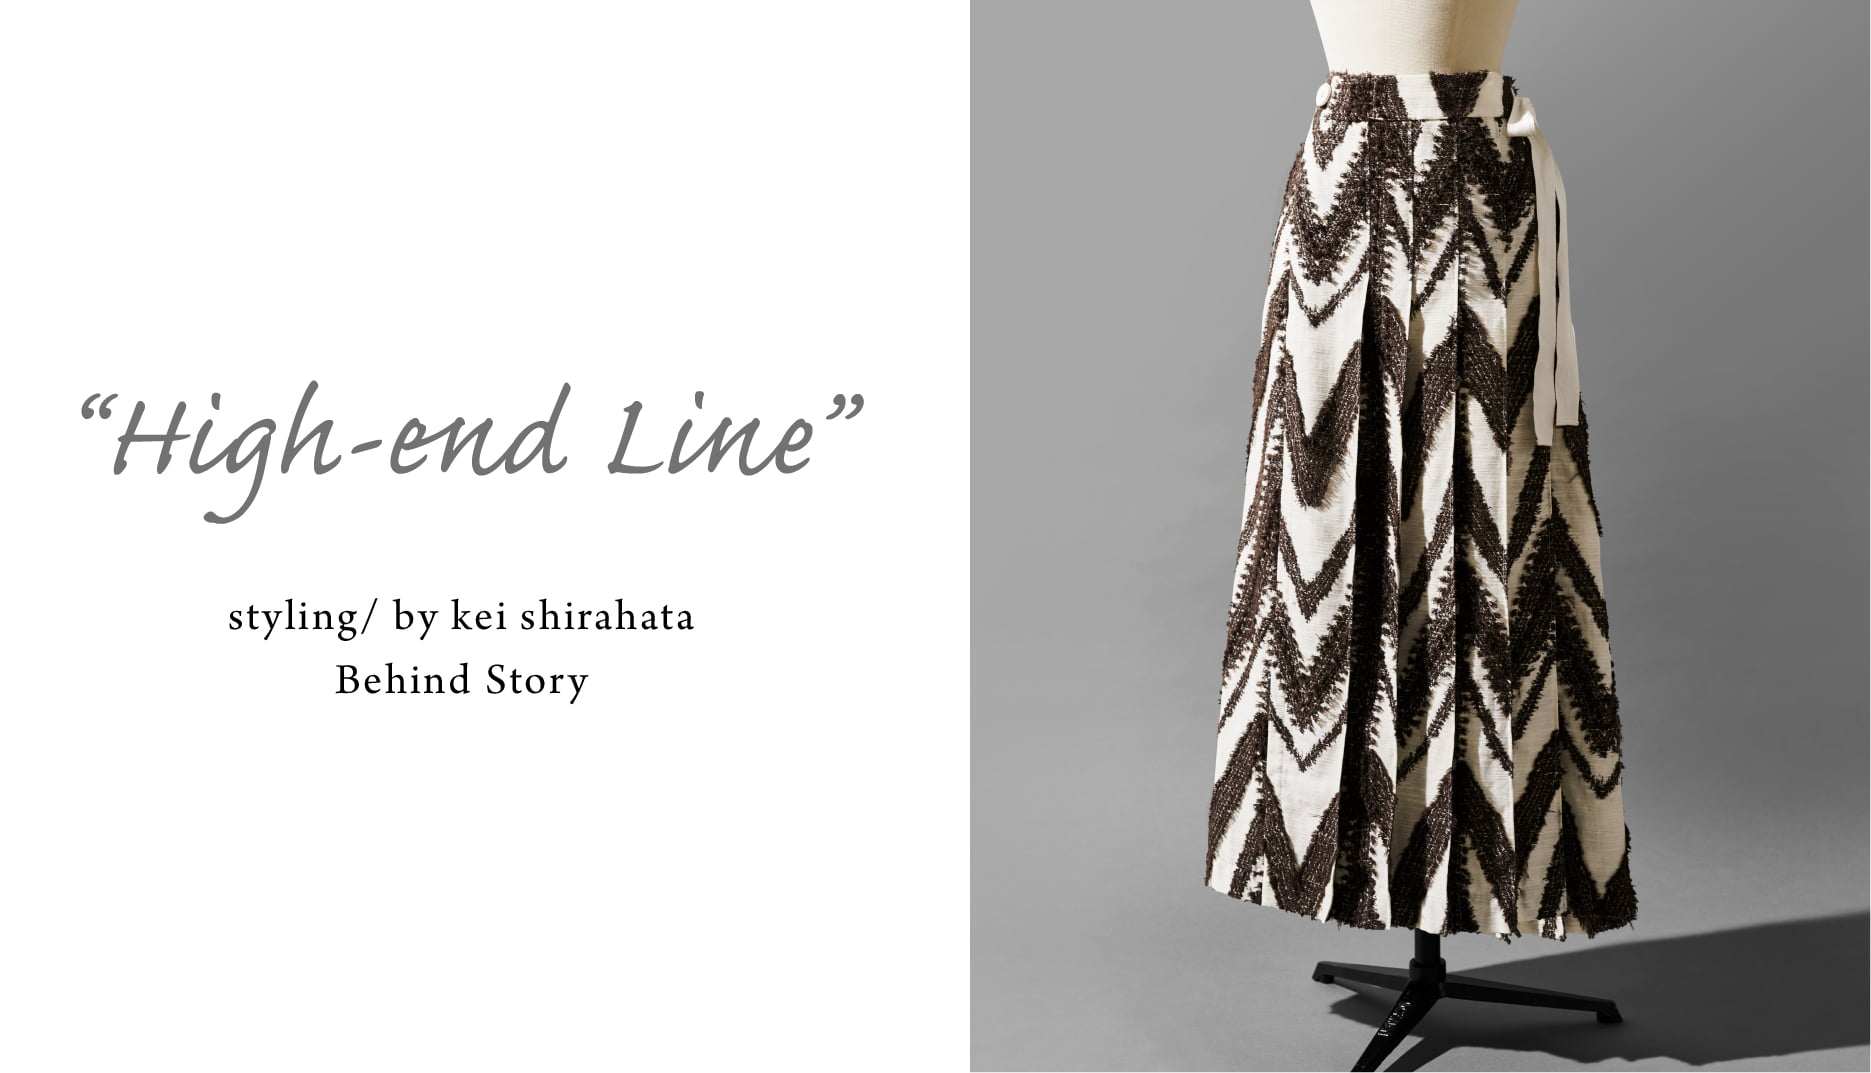 """""""High-end Line"""": styling/ by Kei Shirahata, Behind story."""